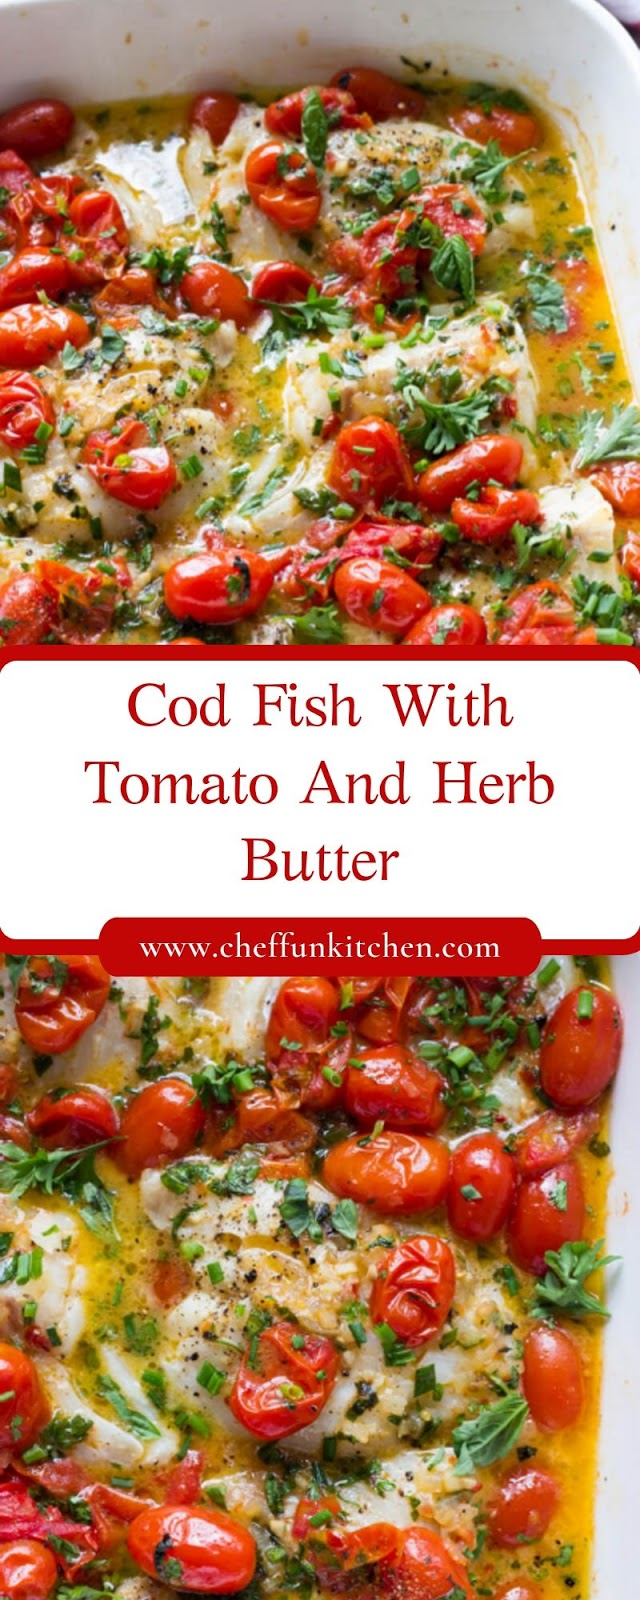 Cod Fish With Tomato And Herb Butter